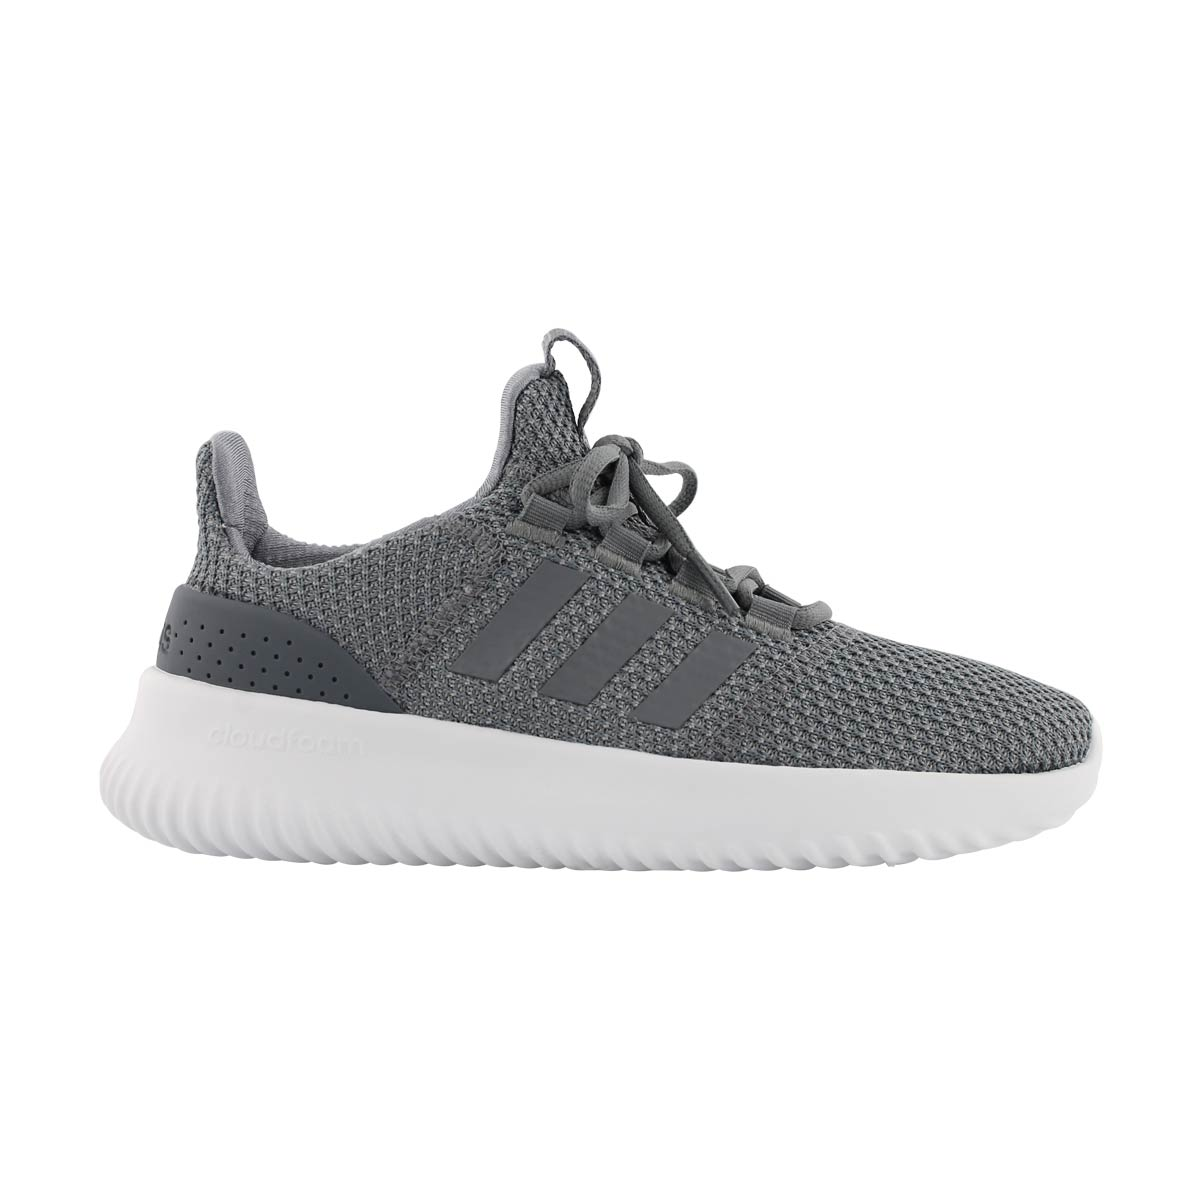 Chlds Cloudfoam Ultimate gry/onx runners